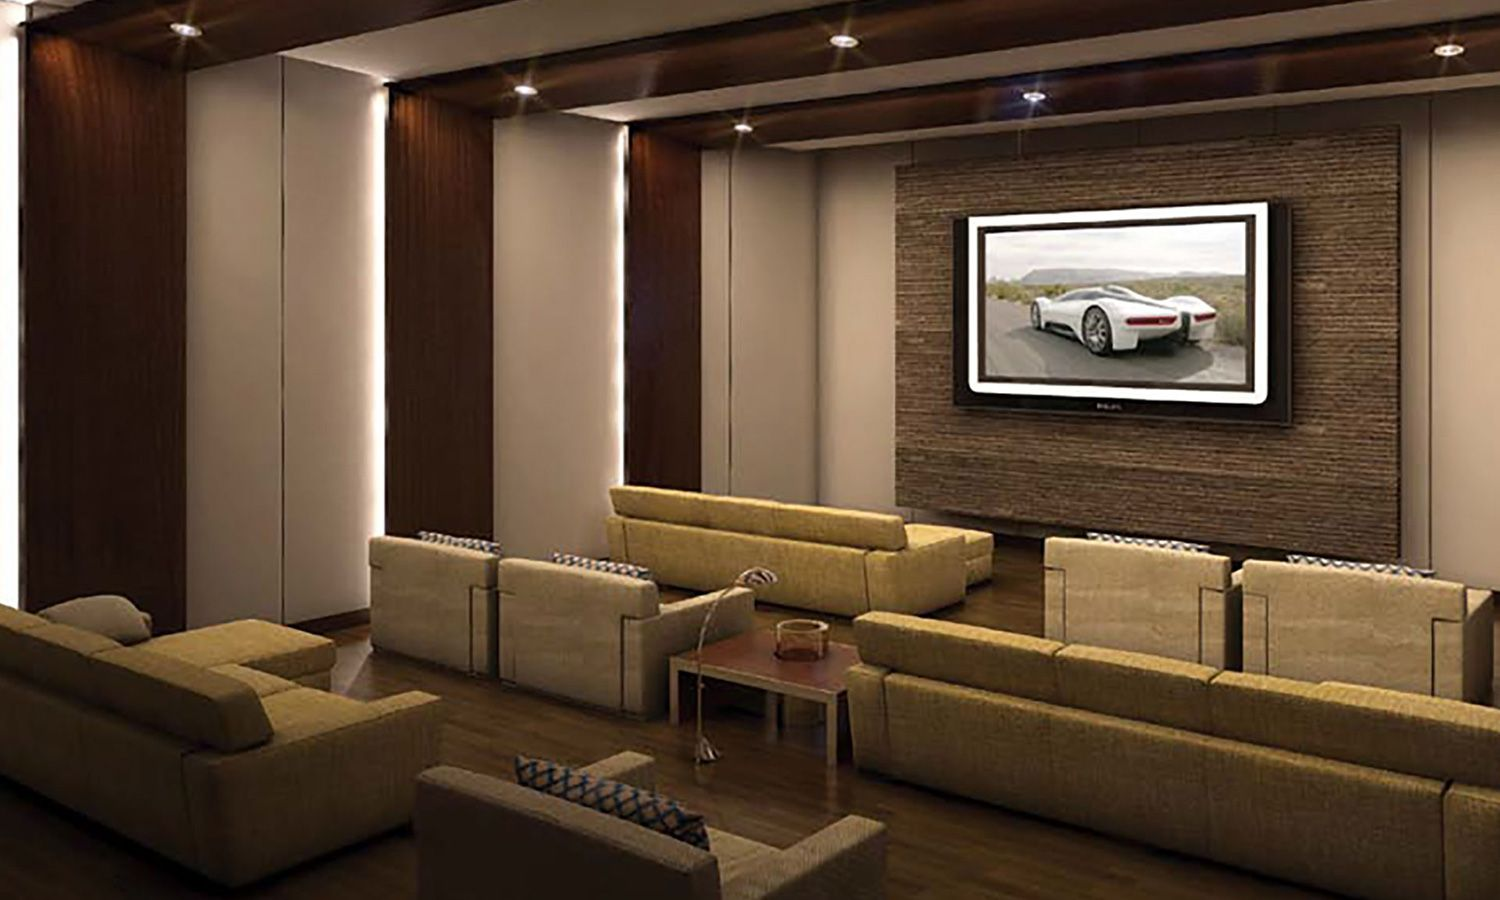 Large theater with wood finishing and surround sound, perfect for enjoying a movie.